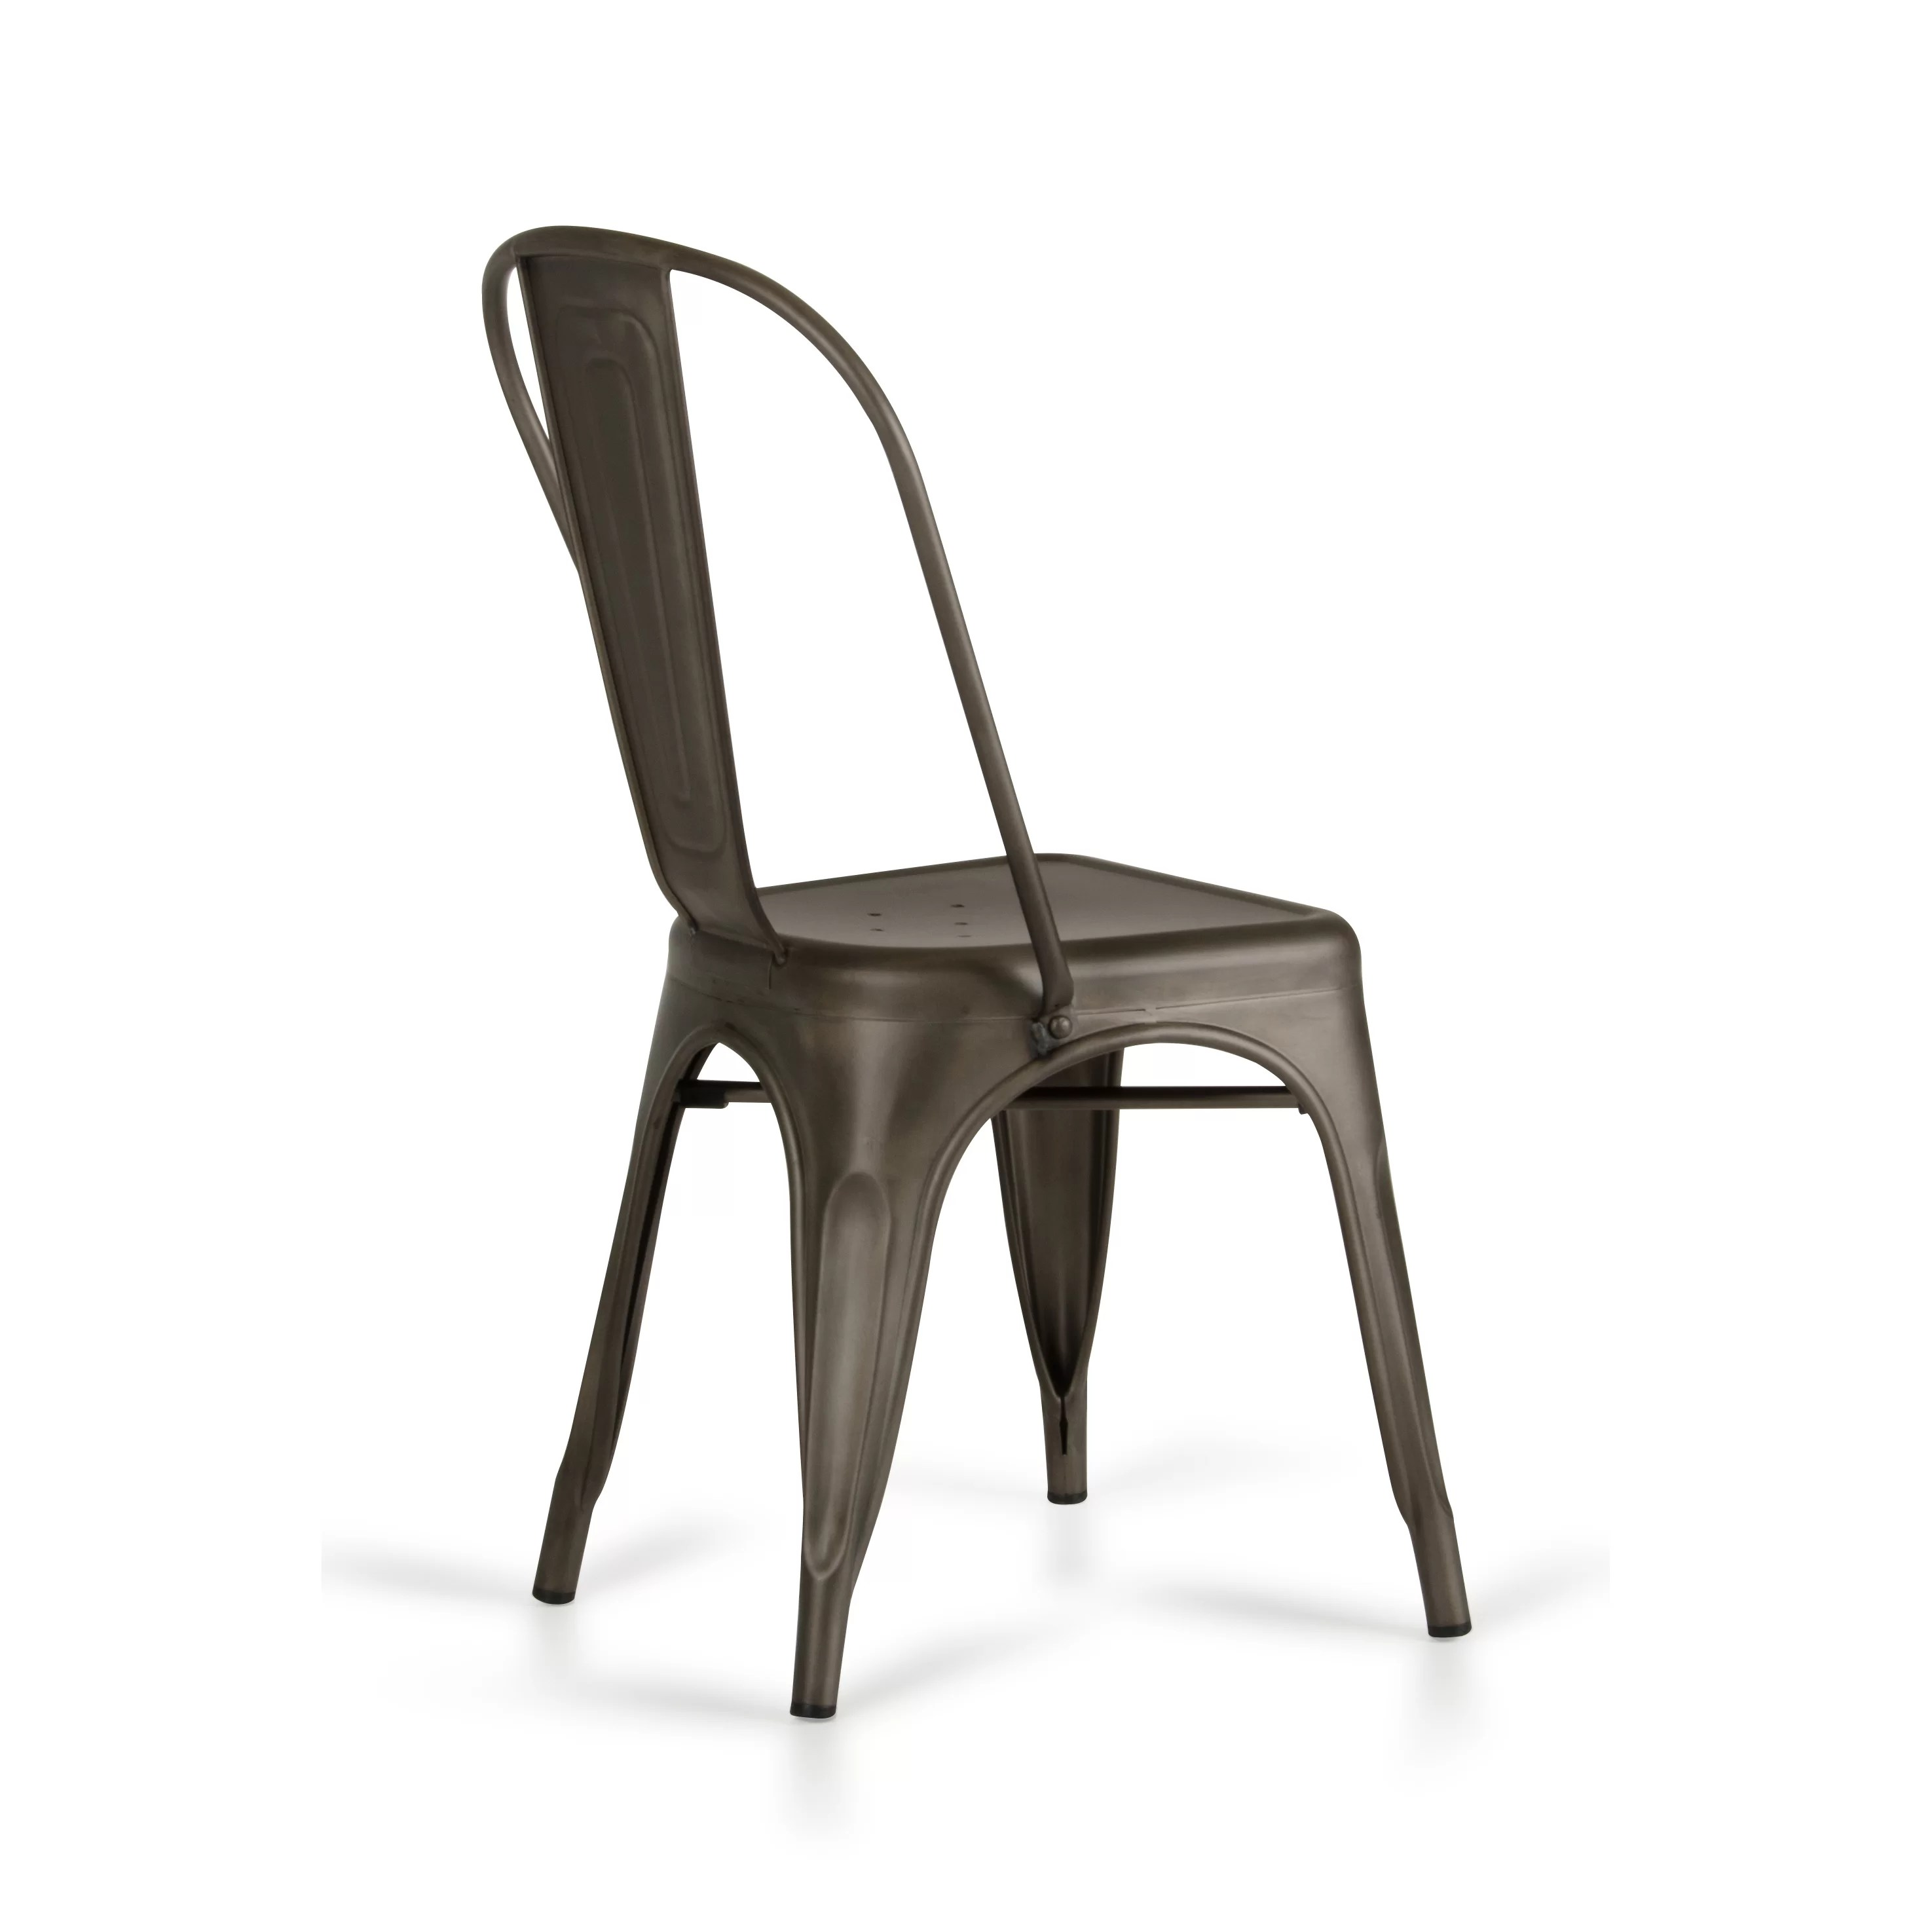 metal farmhouse chairs compact camping chair laurel foundry modern drummond rust dining